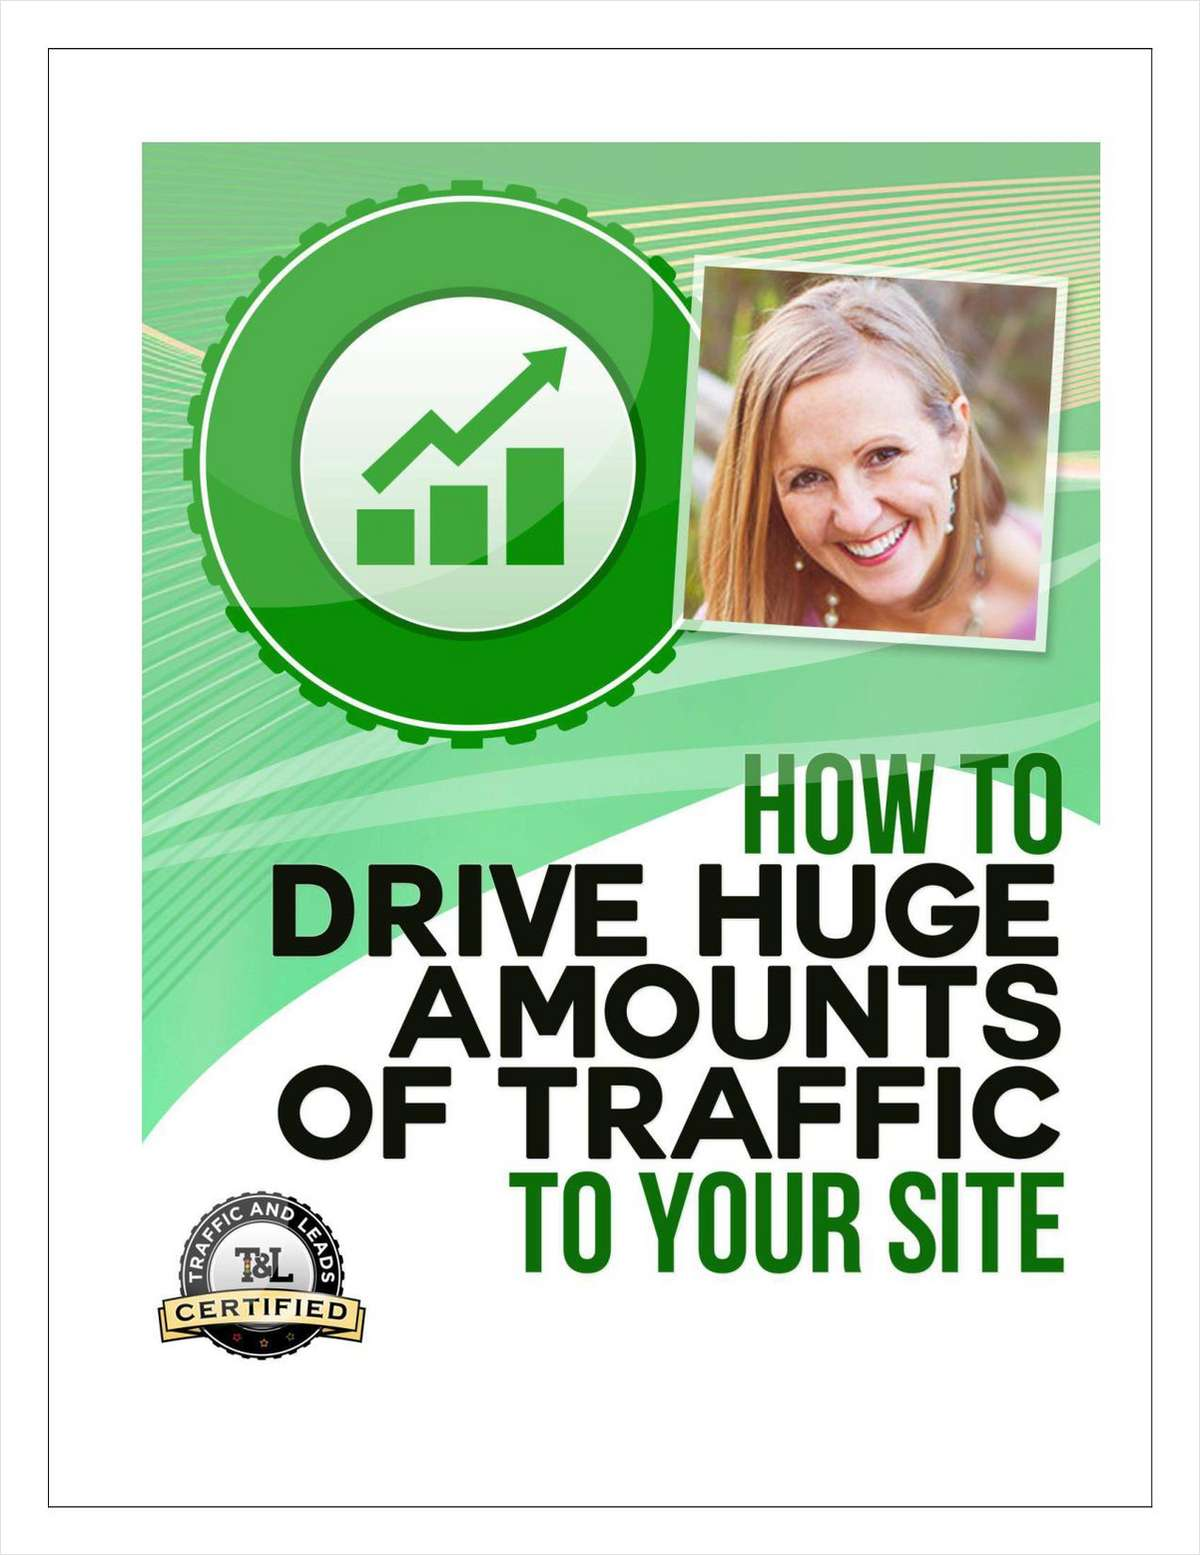 How to Drive Huge Amounts of Traffic to Your Site